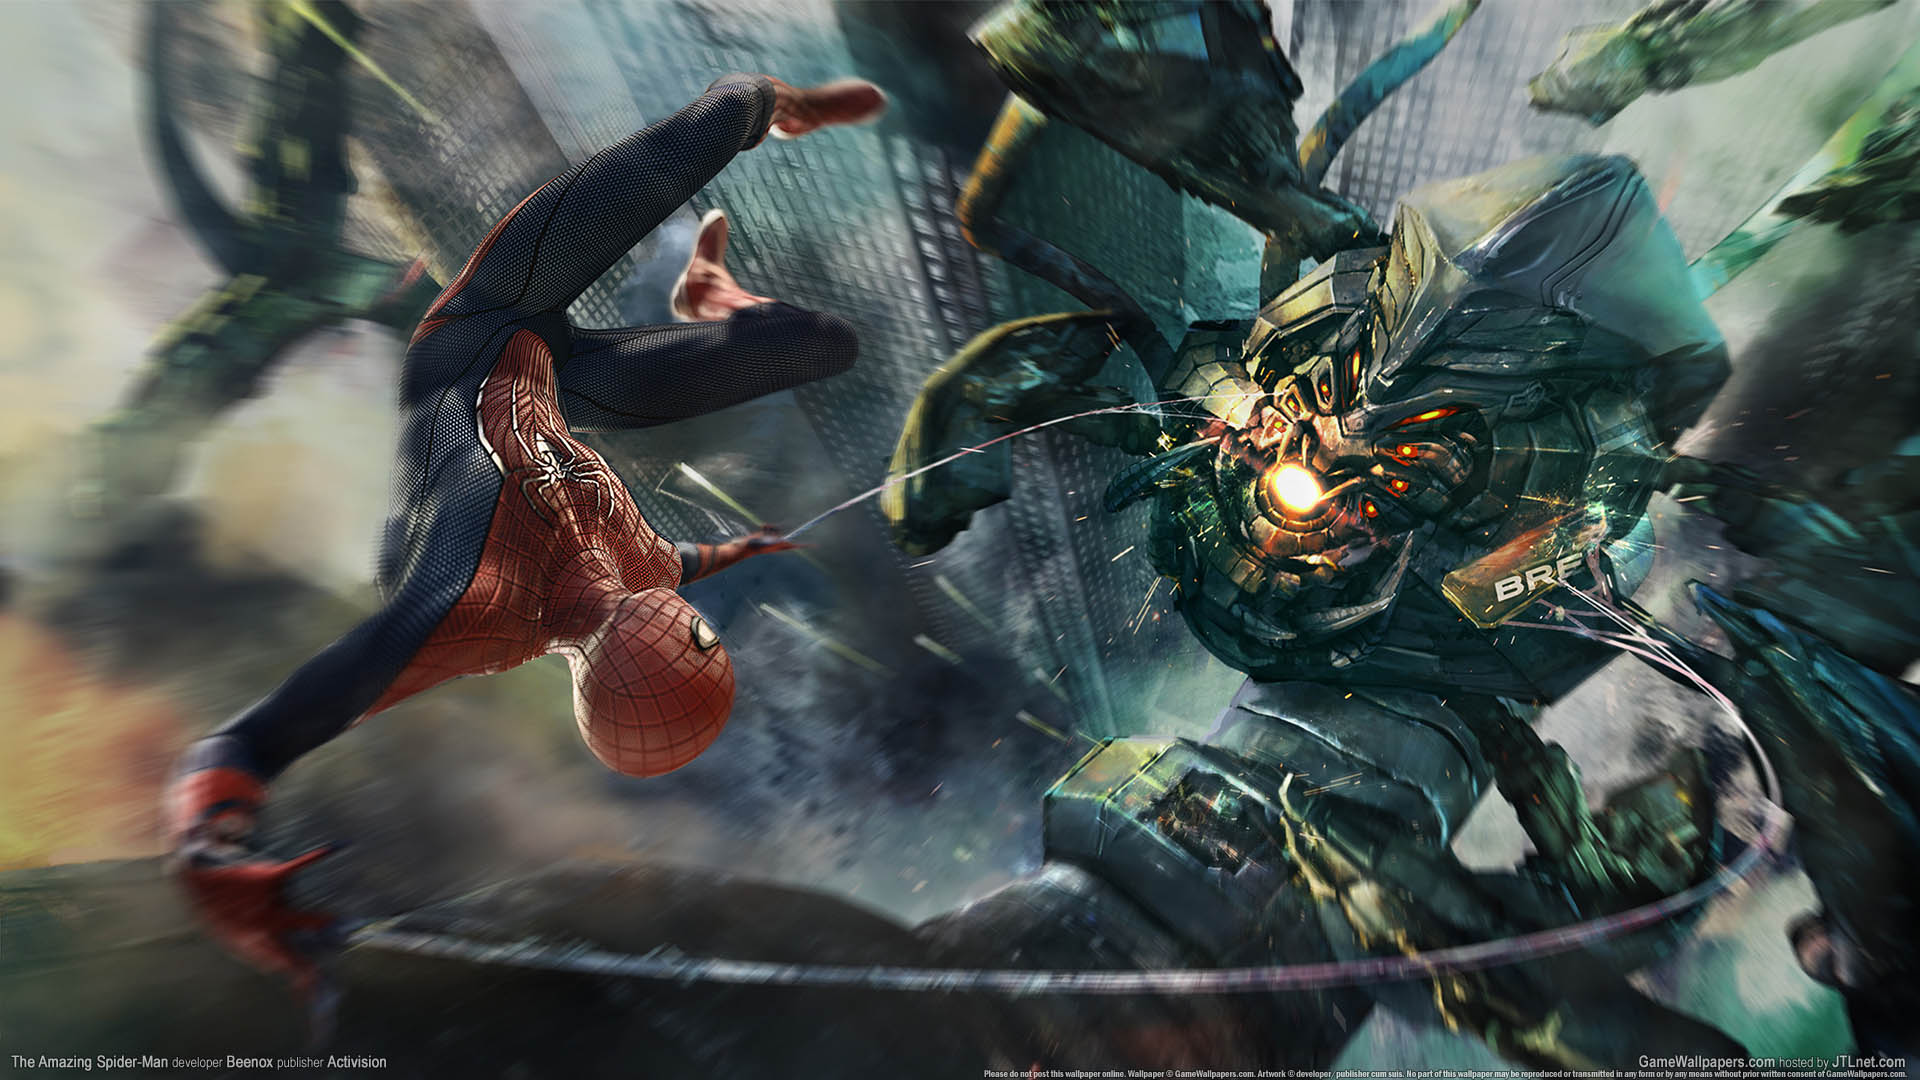 The Amazing Spider Man Wallpaper 02 1920x1080